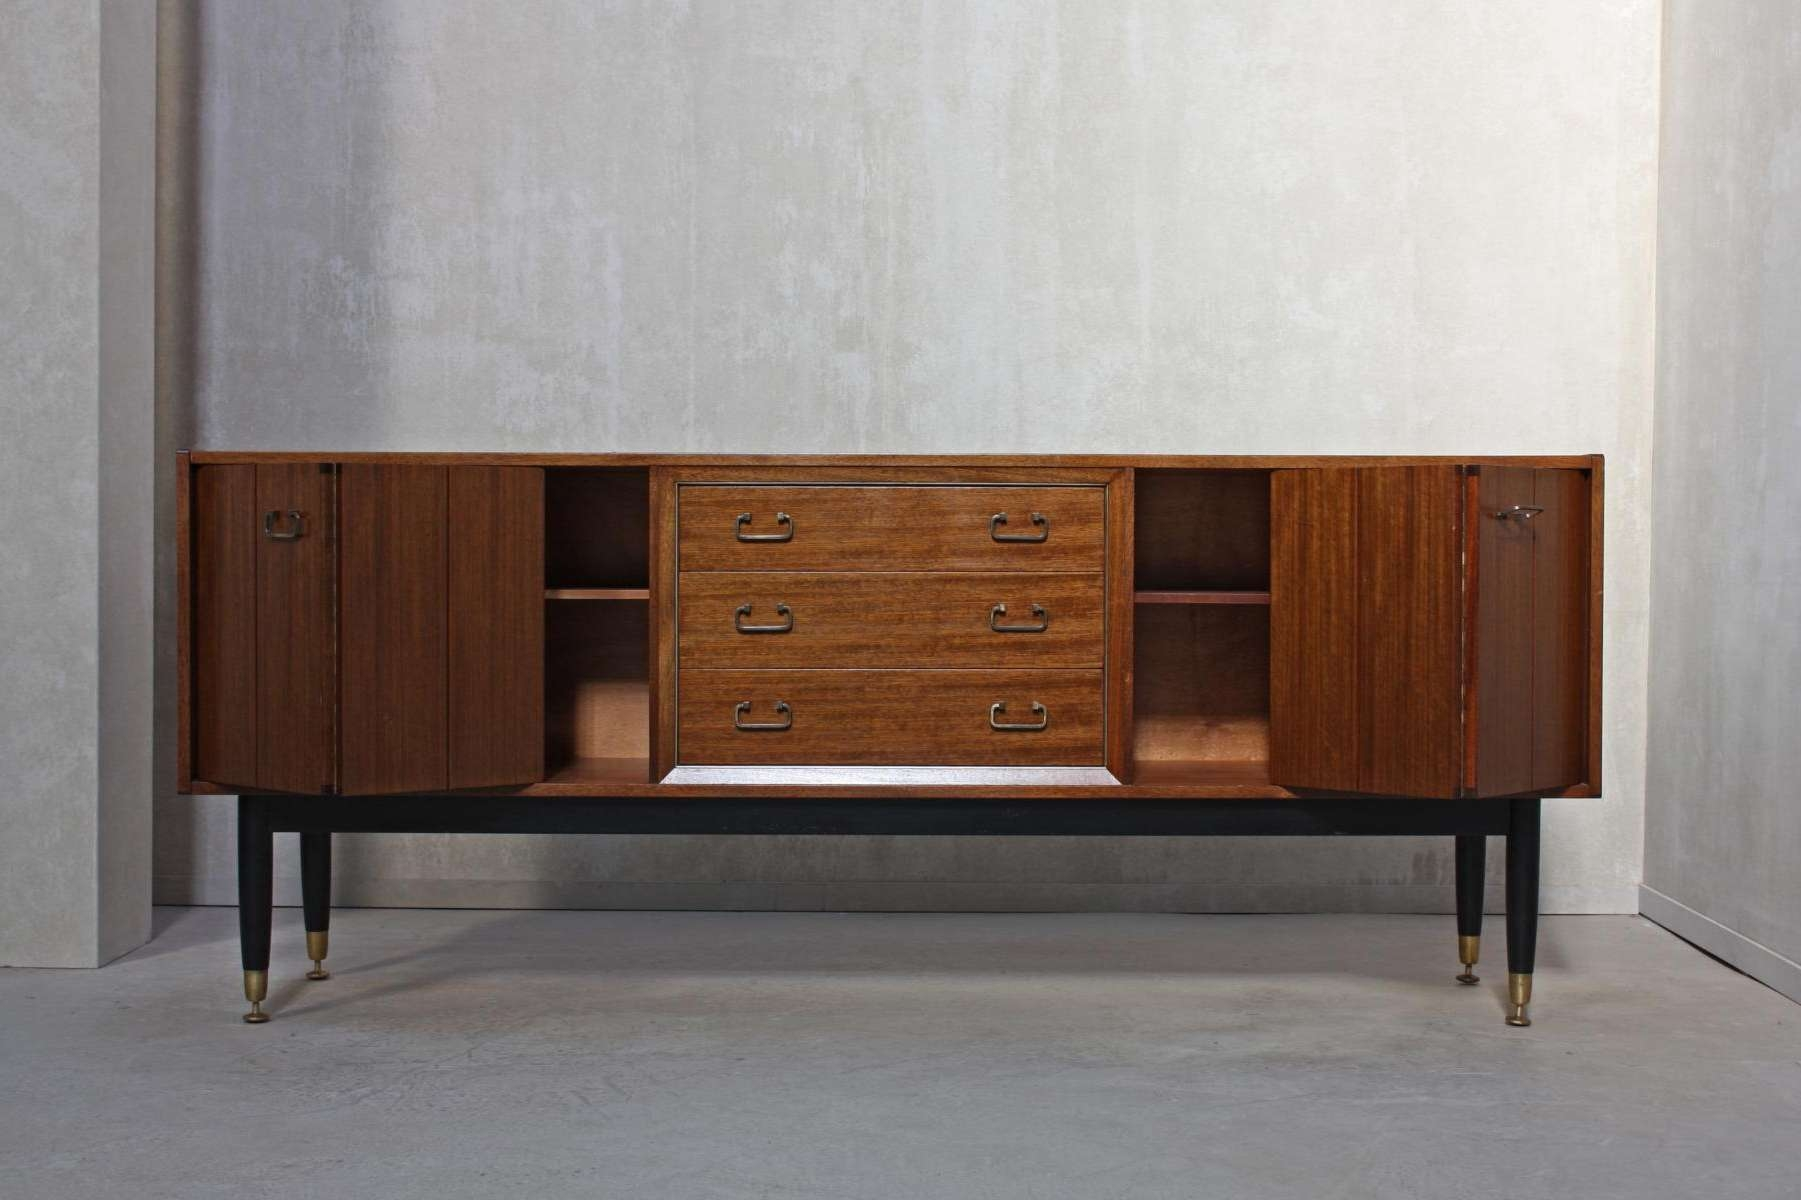 Vintage Sideboard From G Plan, 1950S For Sale At Pamono With Regard To G Plan Vintage Sideboards (Gallery 2 of 20)